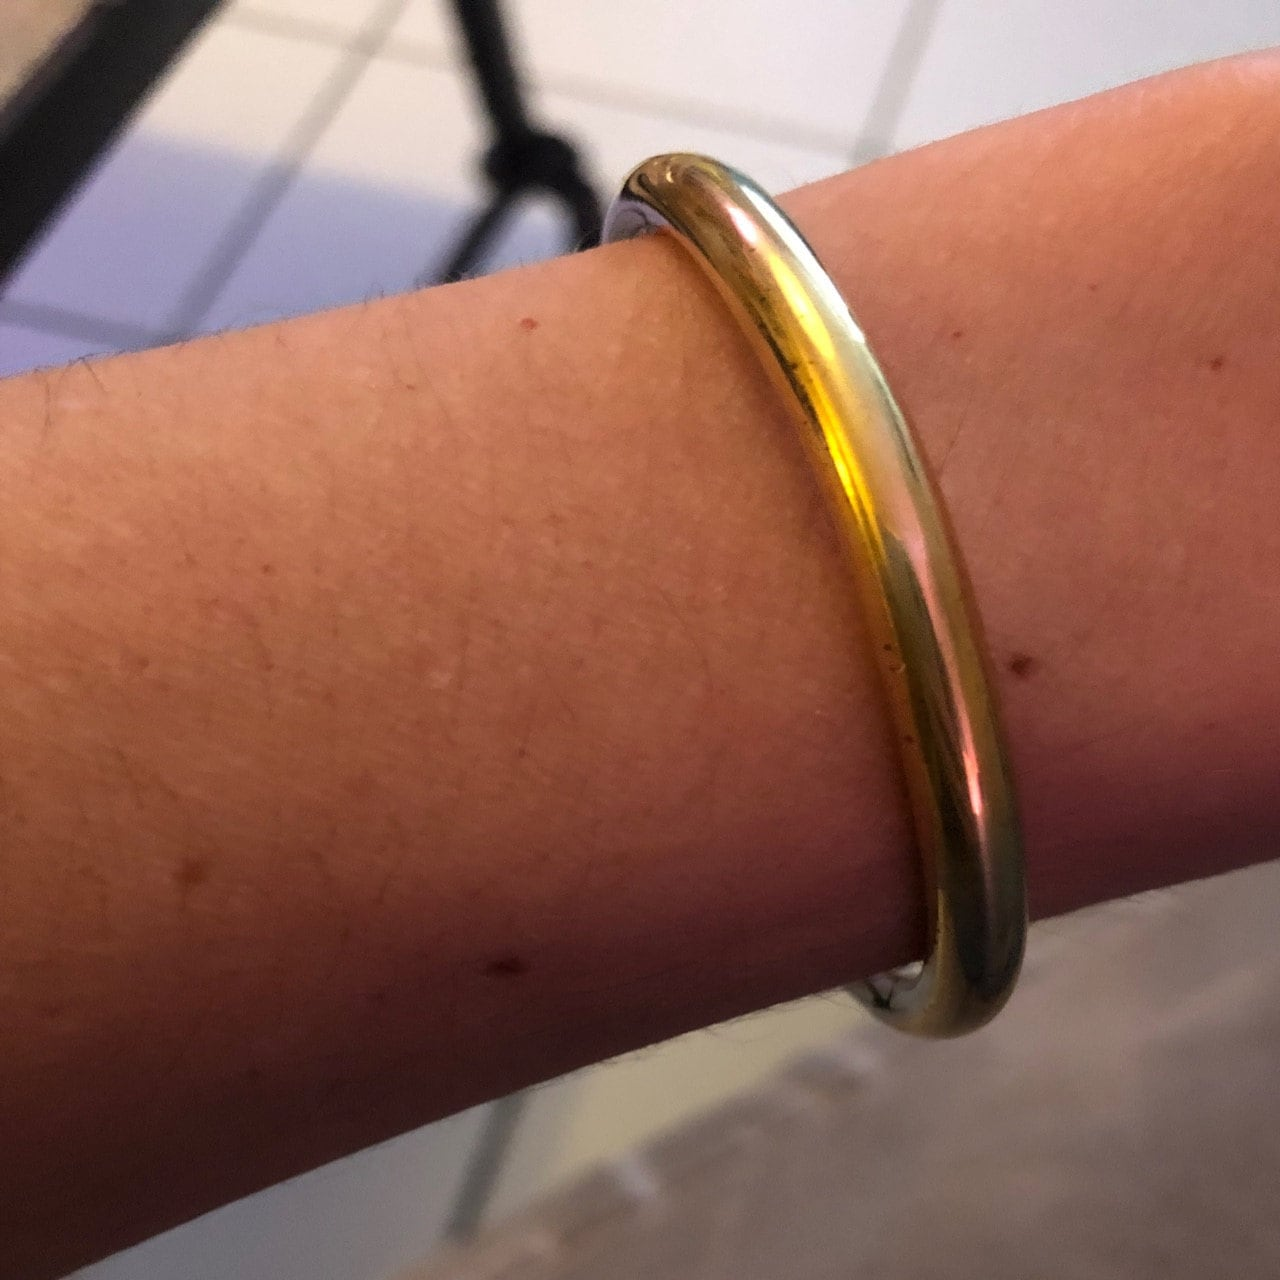 Marie Ruelle added a photo of their purchase